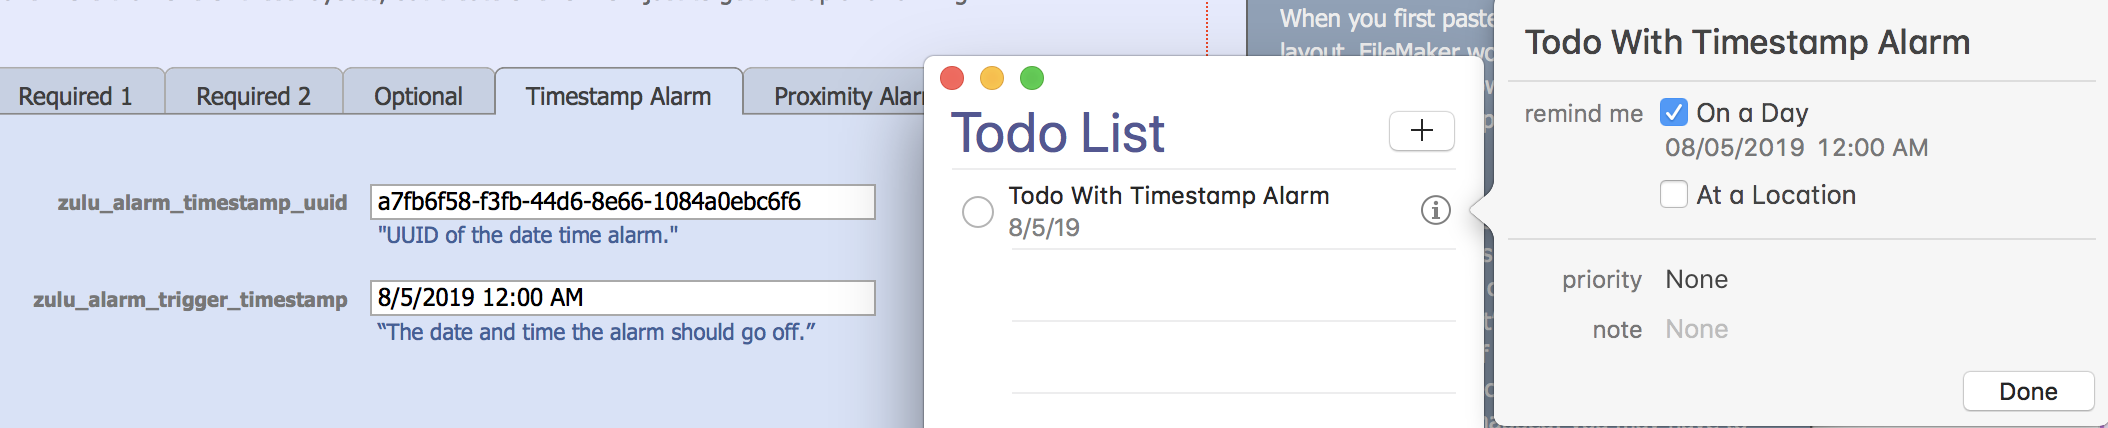 Zulu Todo With Timestamp Alarm.png